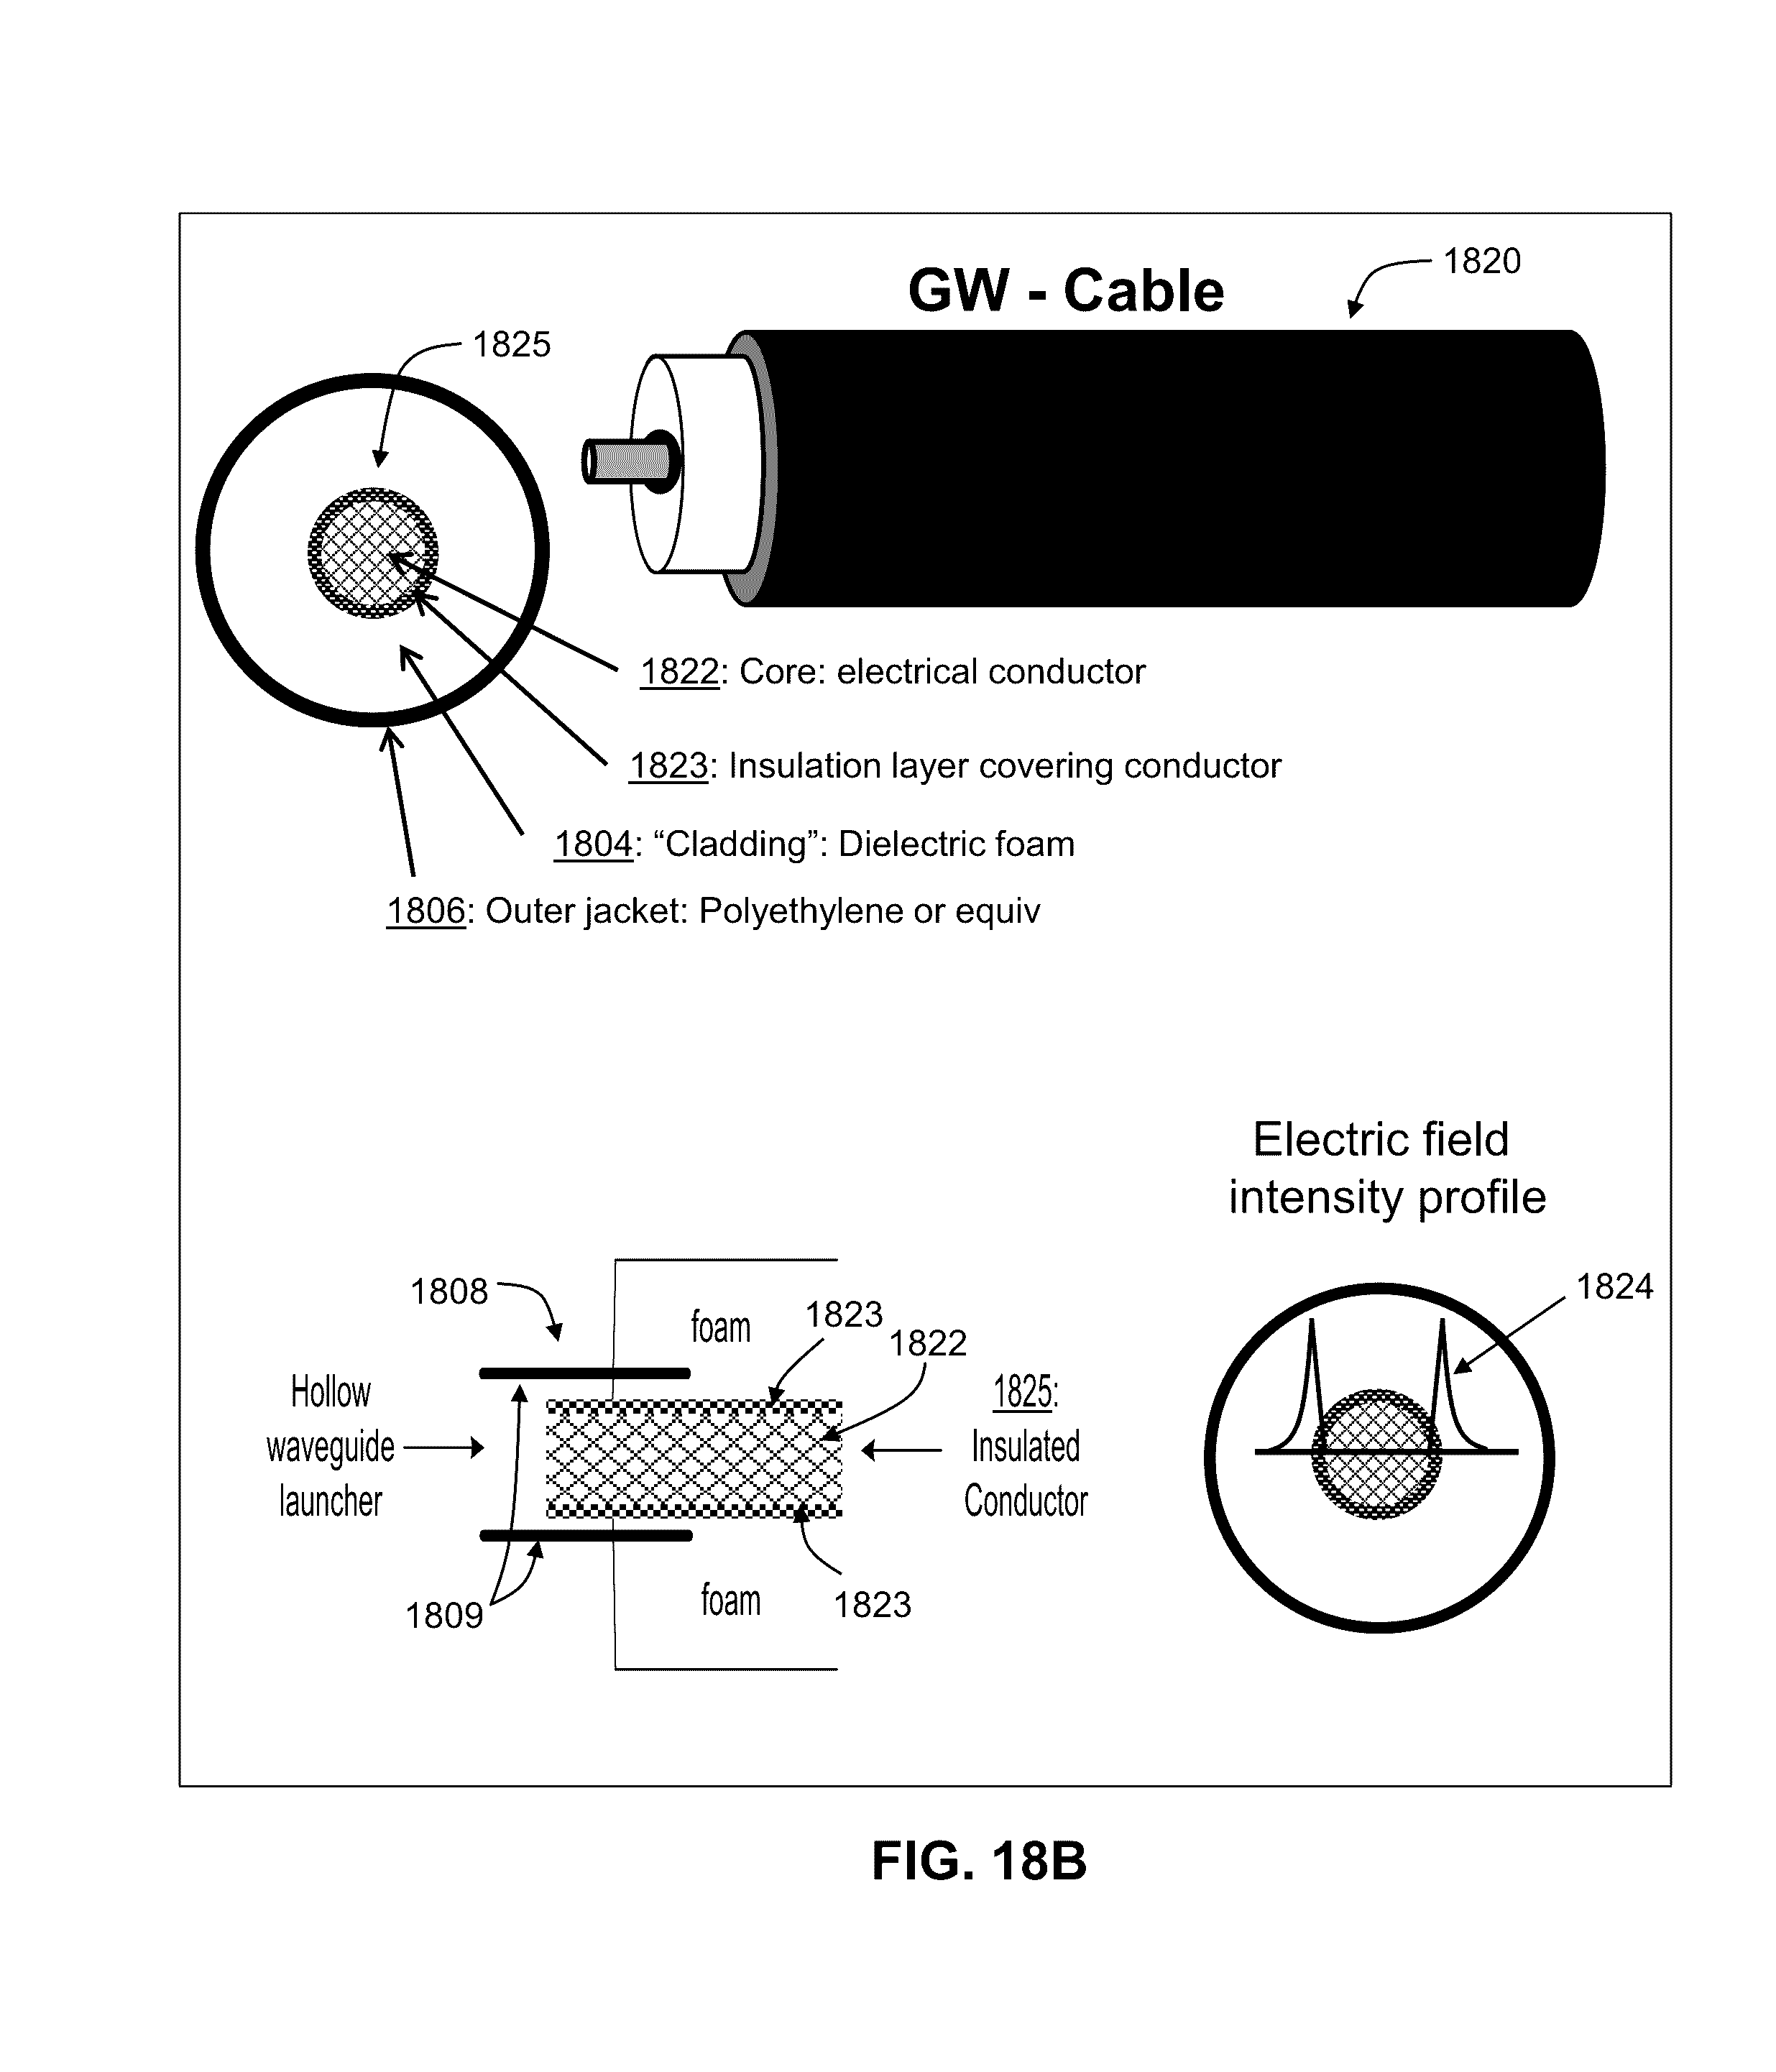 us9509415b1 - methods and apparatus for inducing a fundamental wave mode on  a transmission medium - google patents